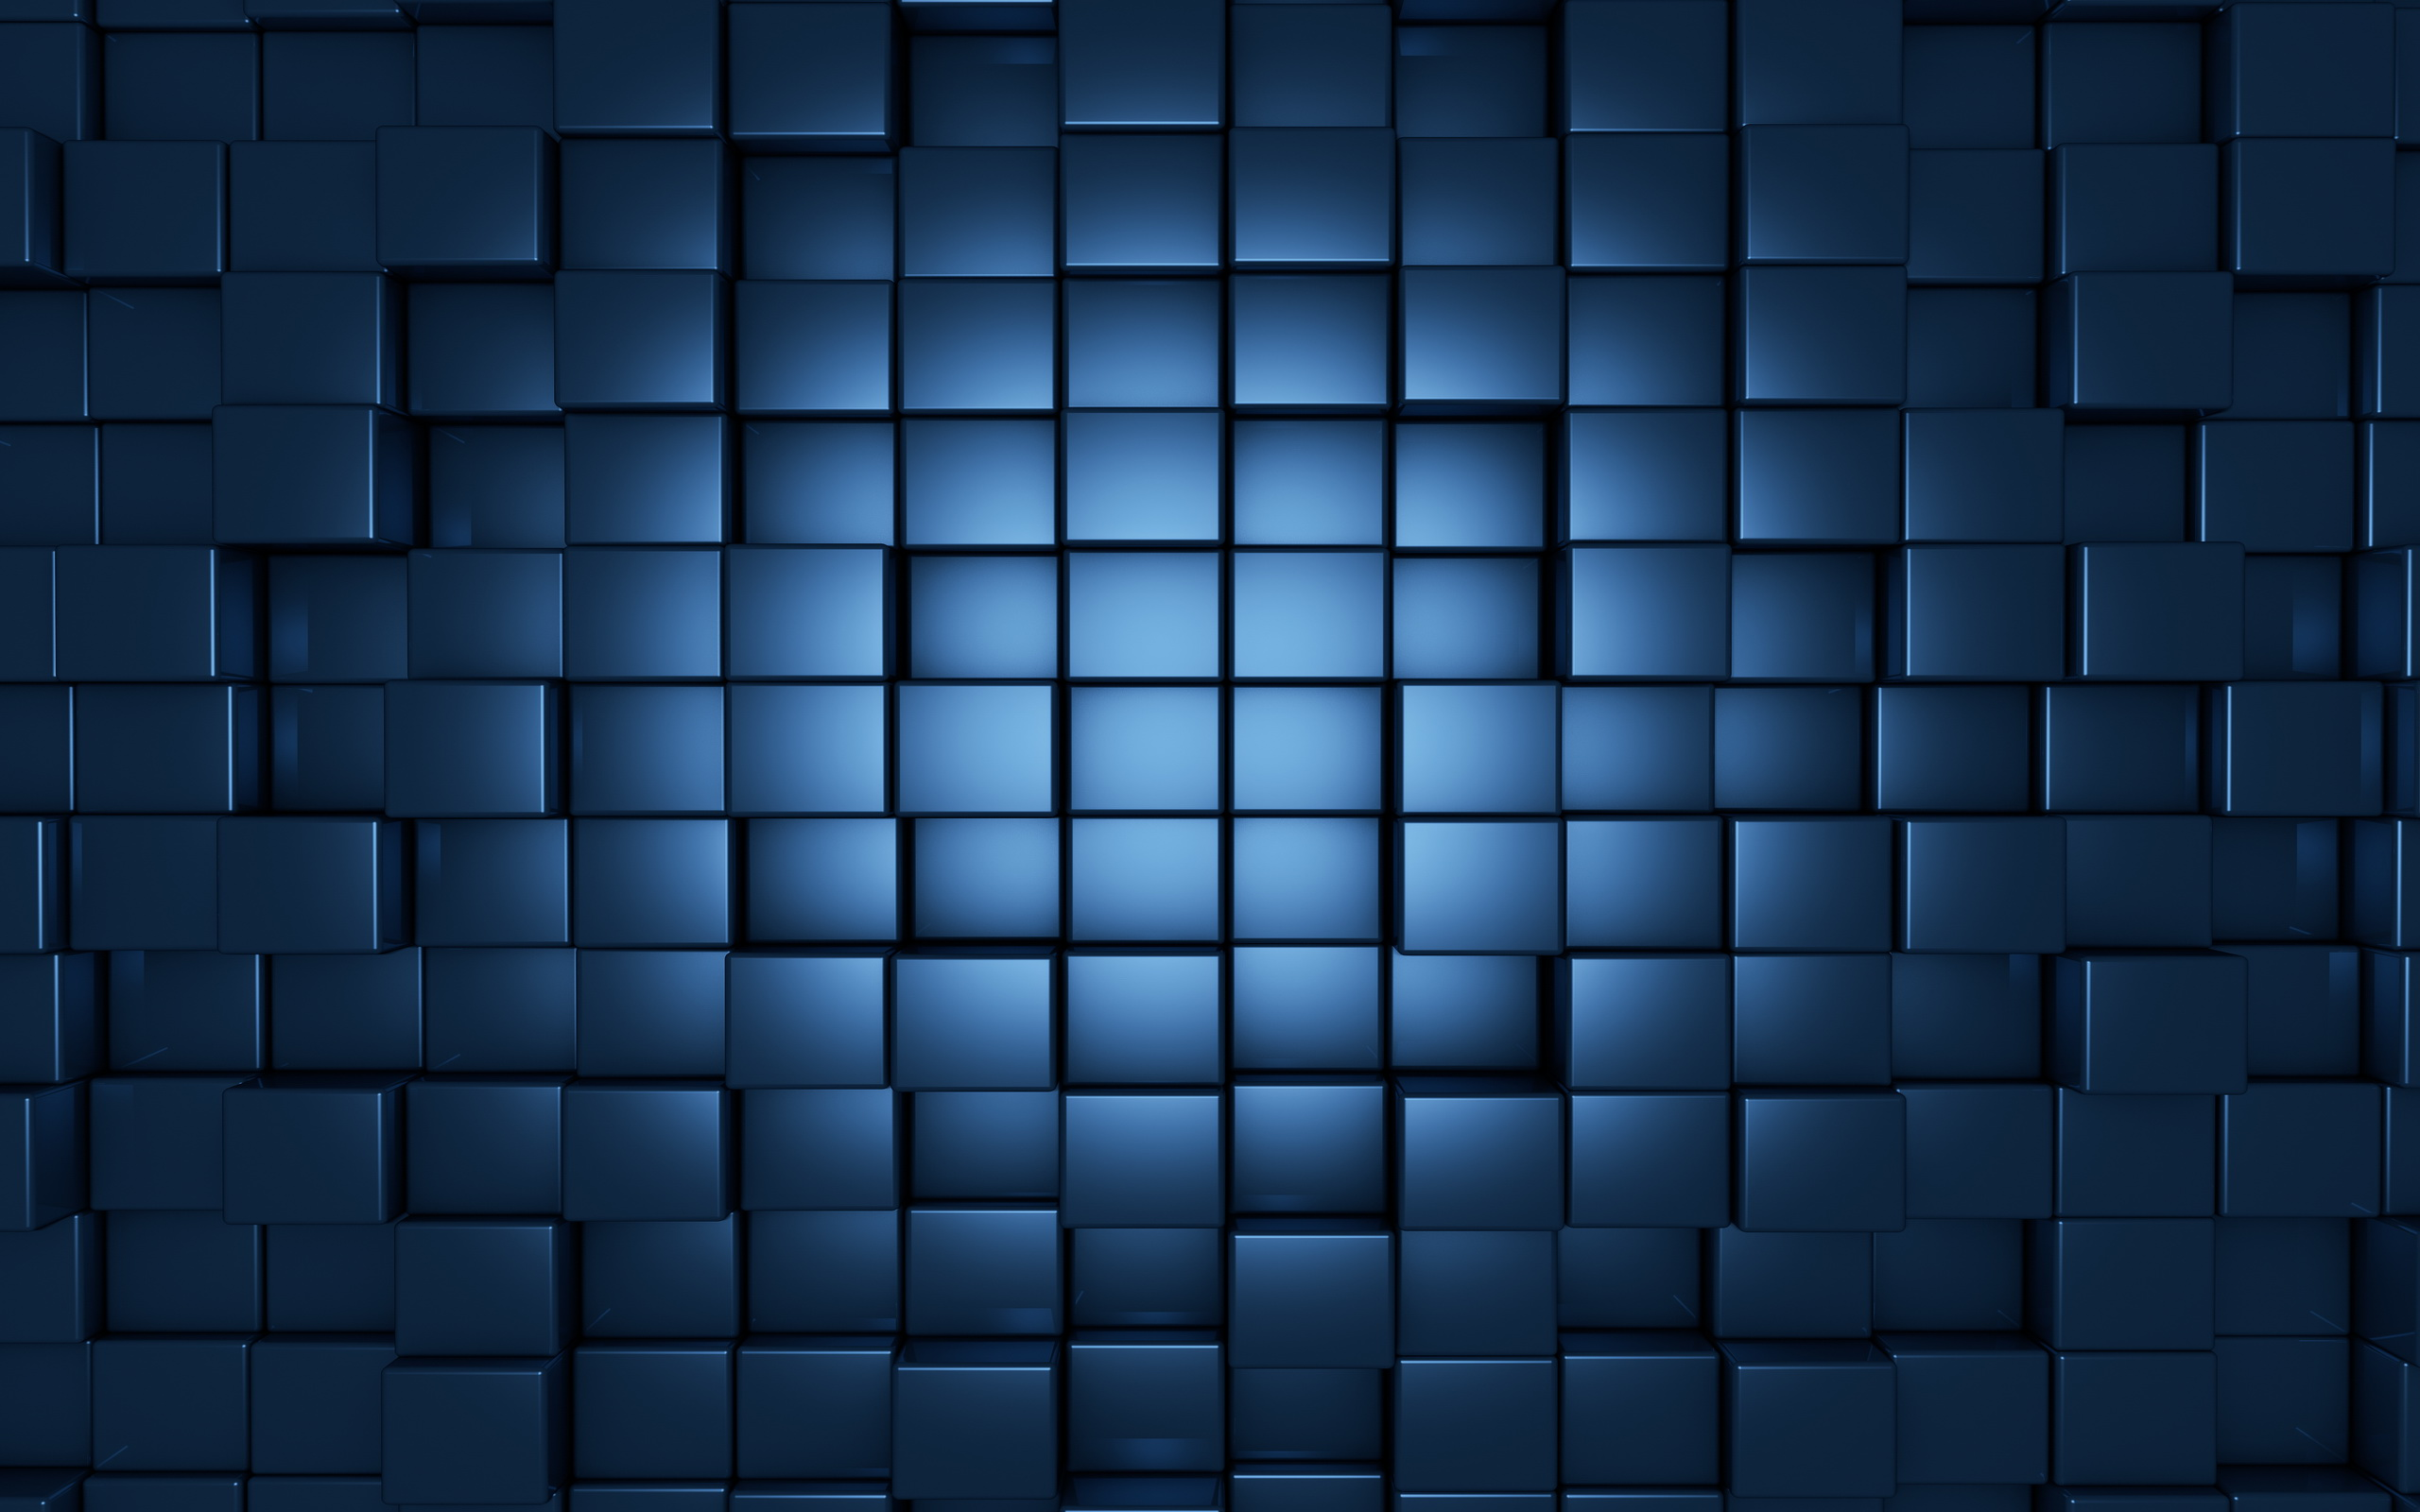 Dark Cubes Wallpapers: Cube Full HD Wallpaper And Background Image